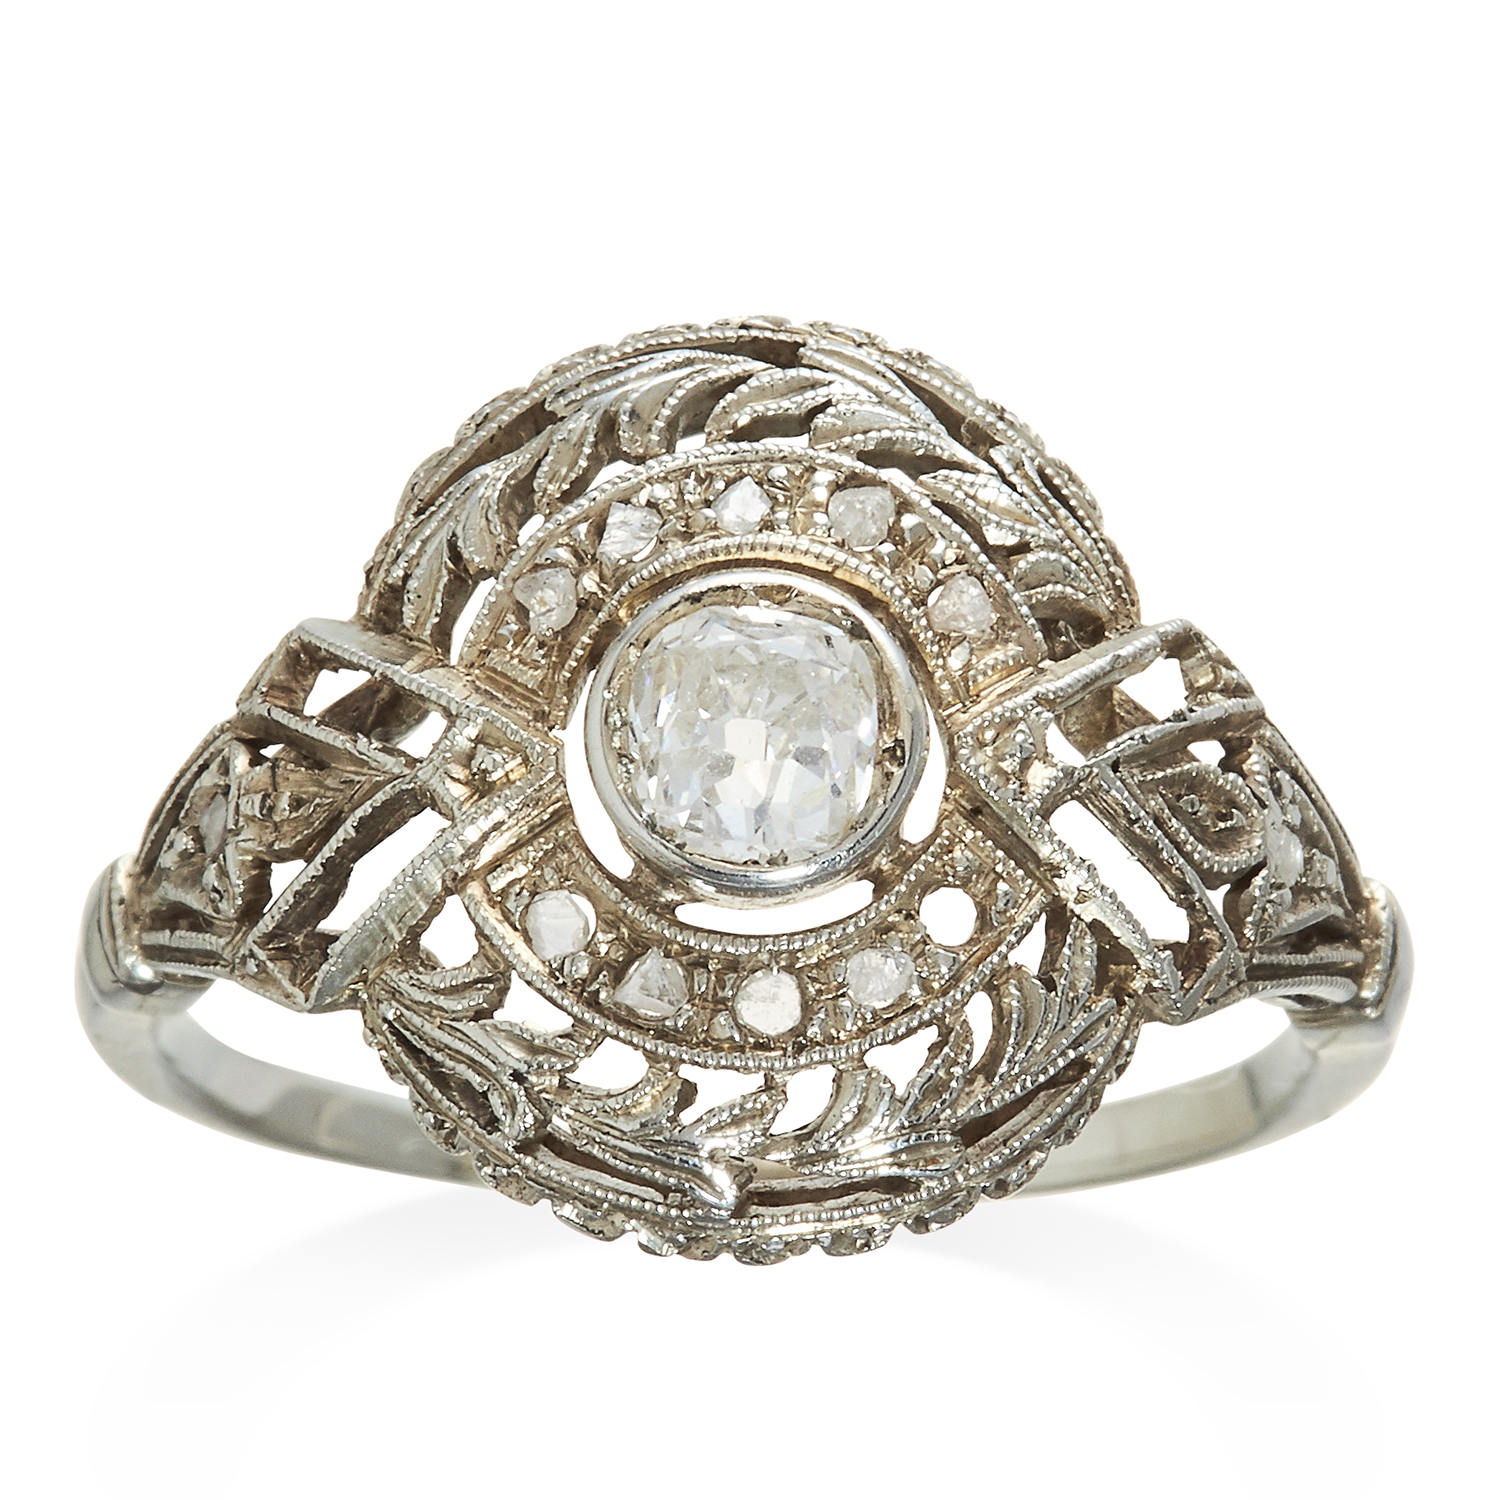 Los 314 - AN ART DECO DIAMOND RING in platinum or white gold, the 0.35 carat old cut diamond within diamond